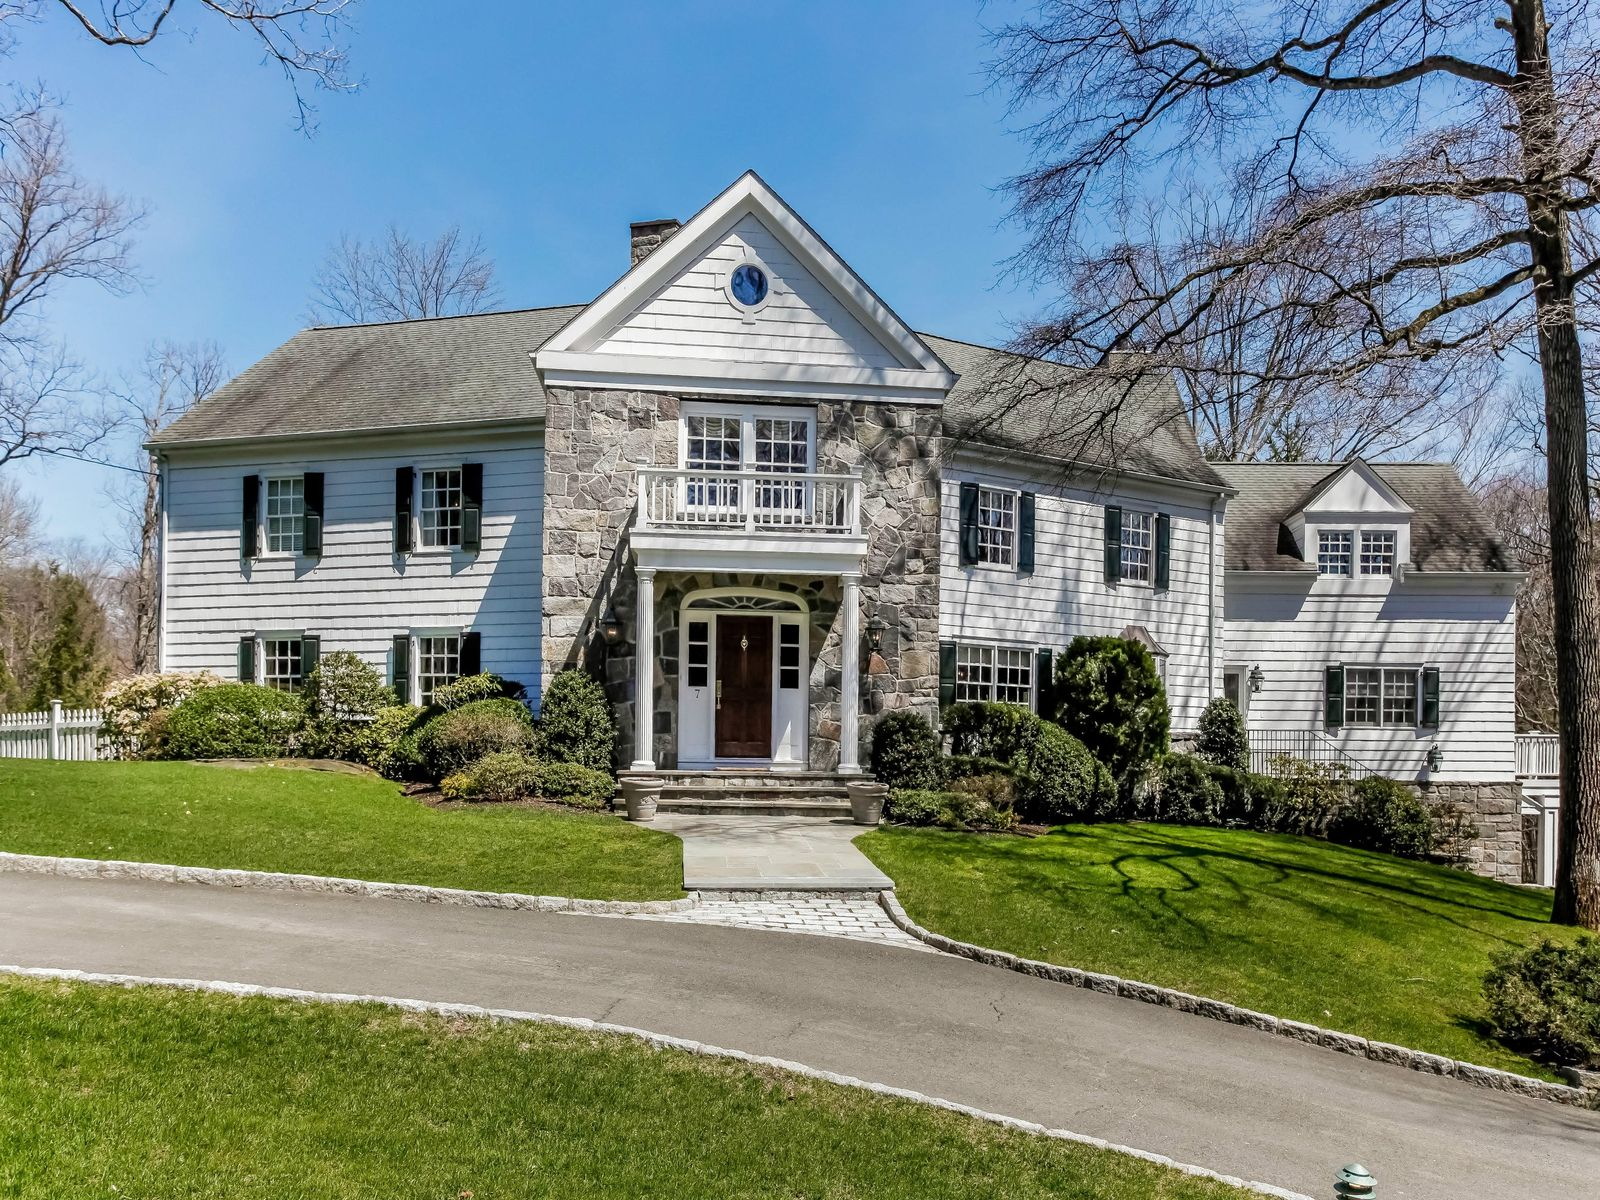 Mid-Country Colonial with Pool, Greenwich CT Single Family Home - Greenwich Real Estate